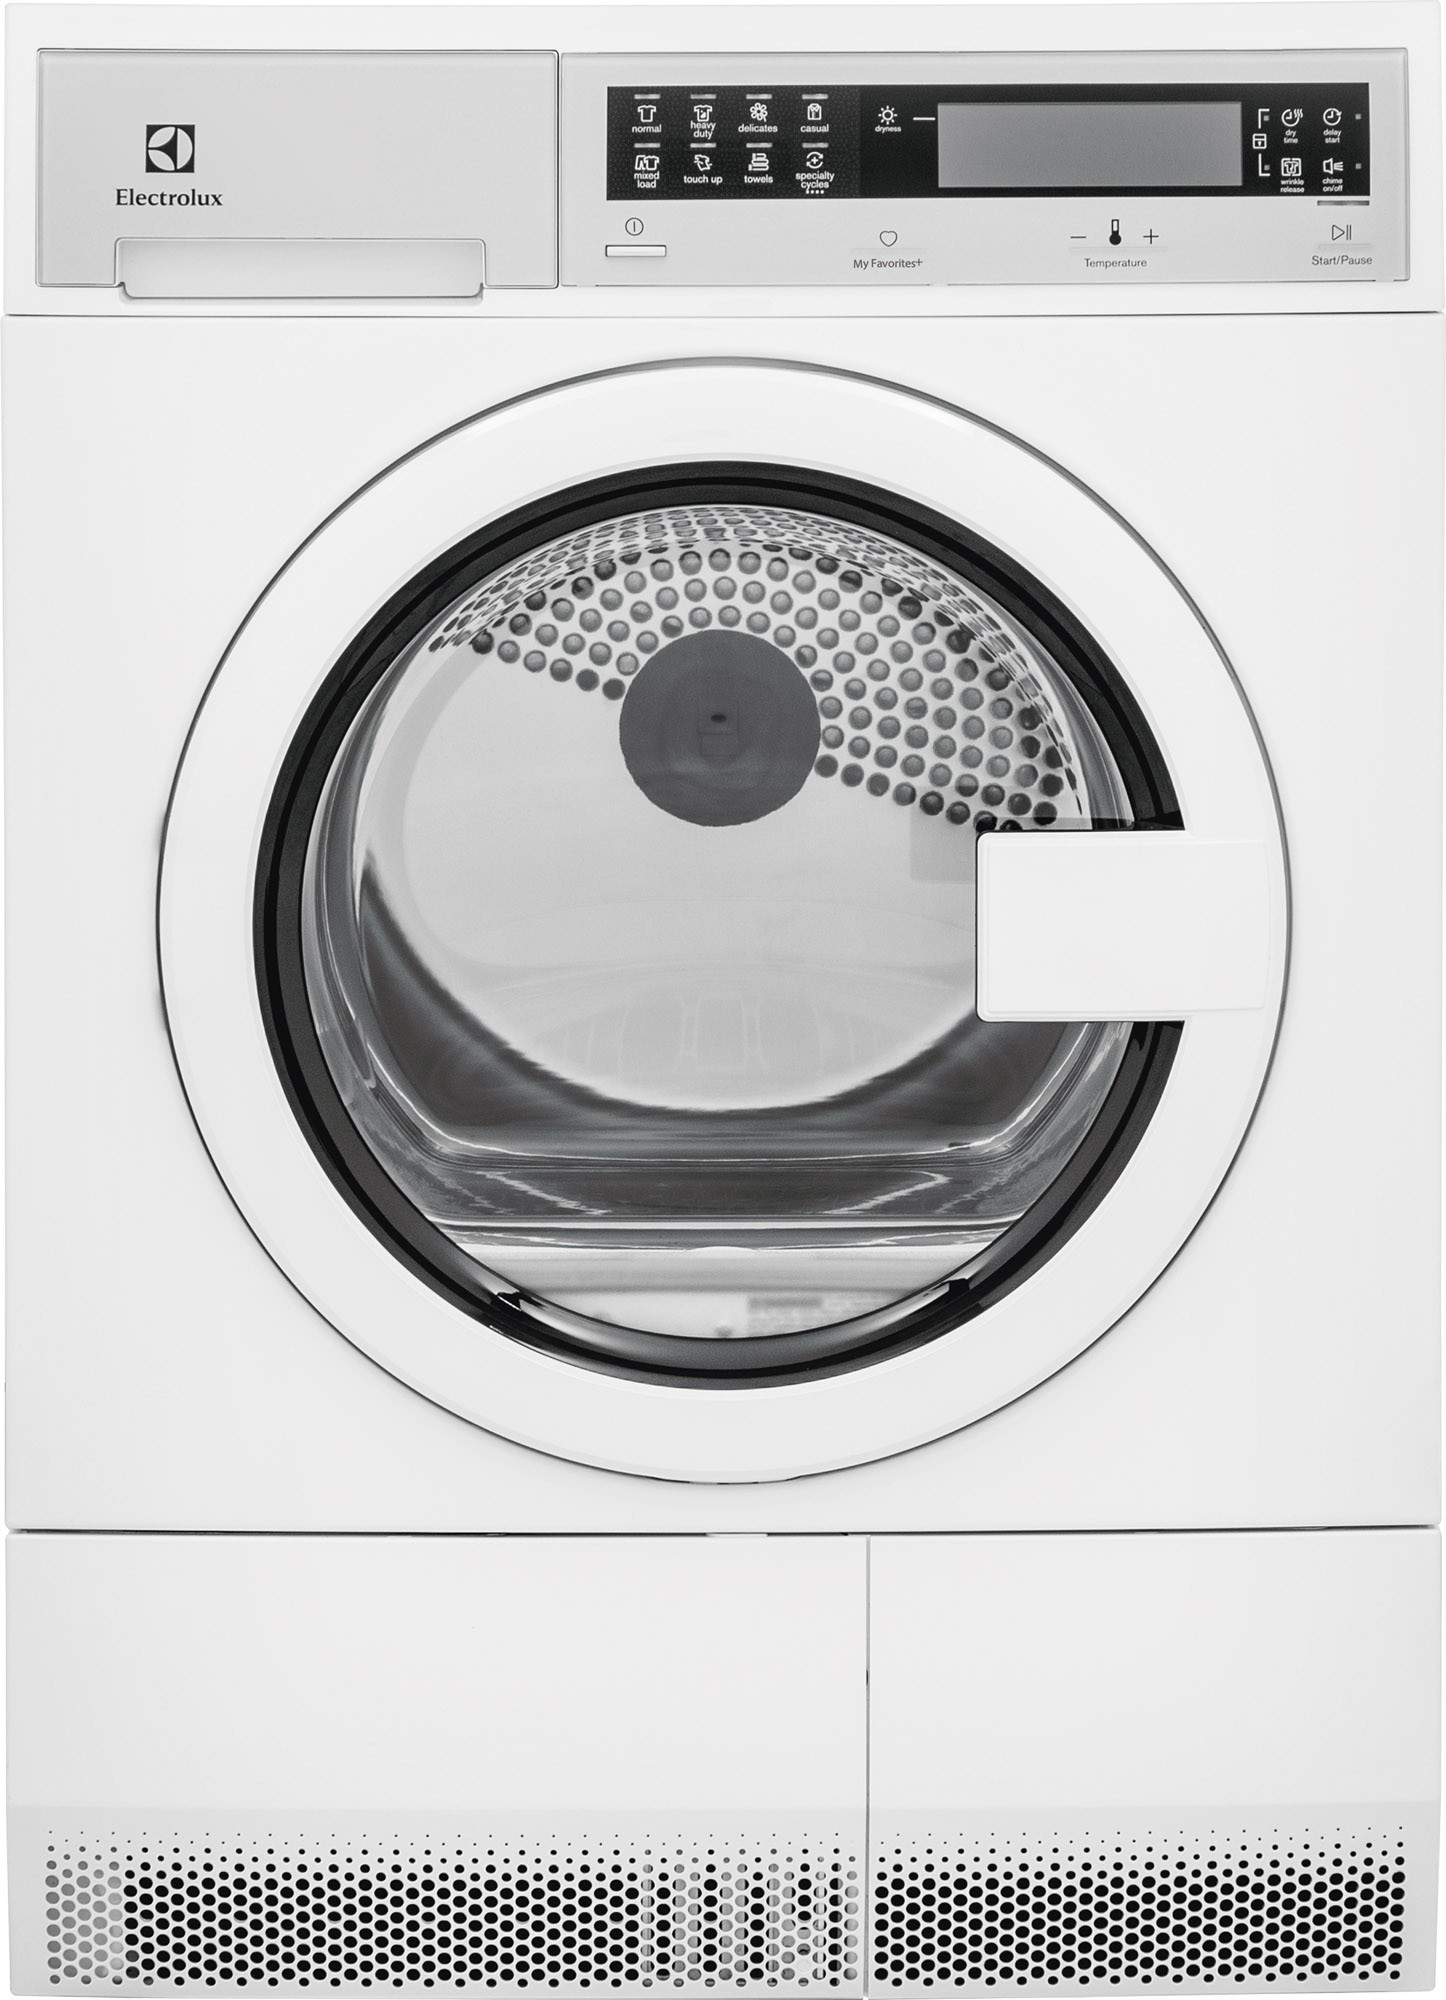 Miele stackable washer dryer ventless - Miele Stackable Washer Dryer Ventless 20